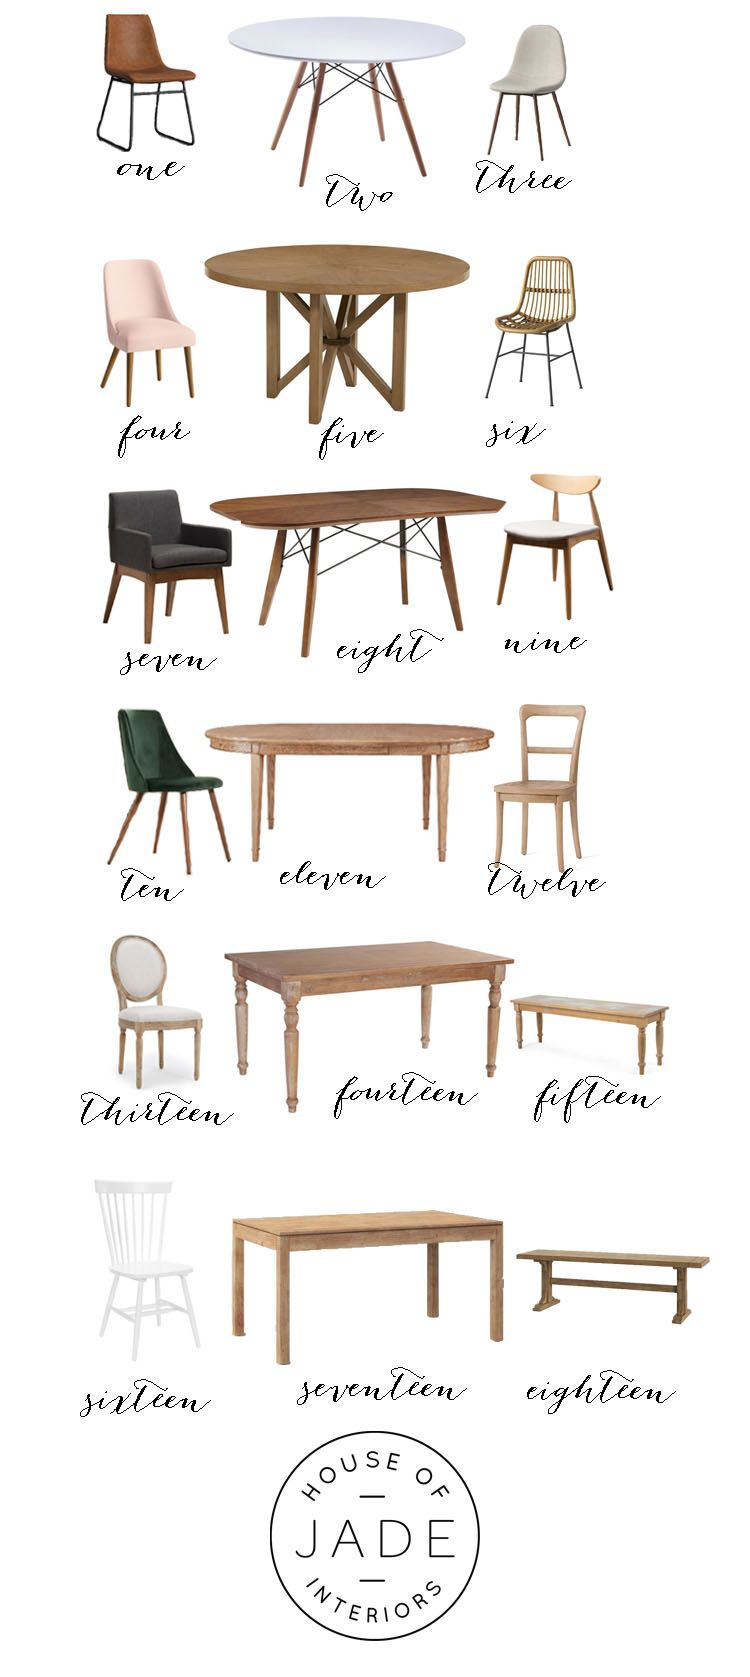 Affordable Dining Chair And Table Round Up Pairings House Of Jade Interiors Blog Affordable Dining Dining Chairs Dining Room Console Table Affordable dining room tables